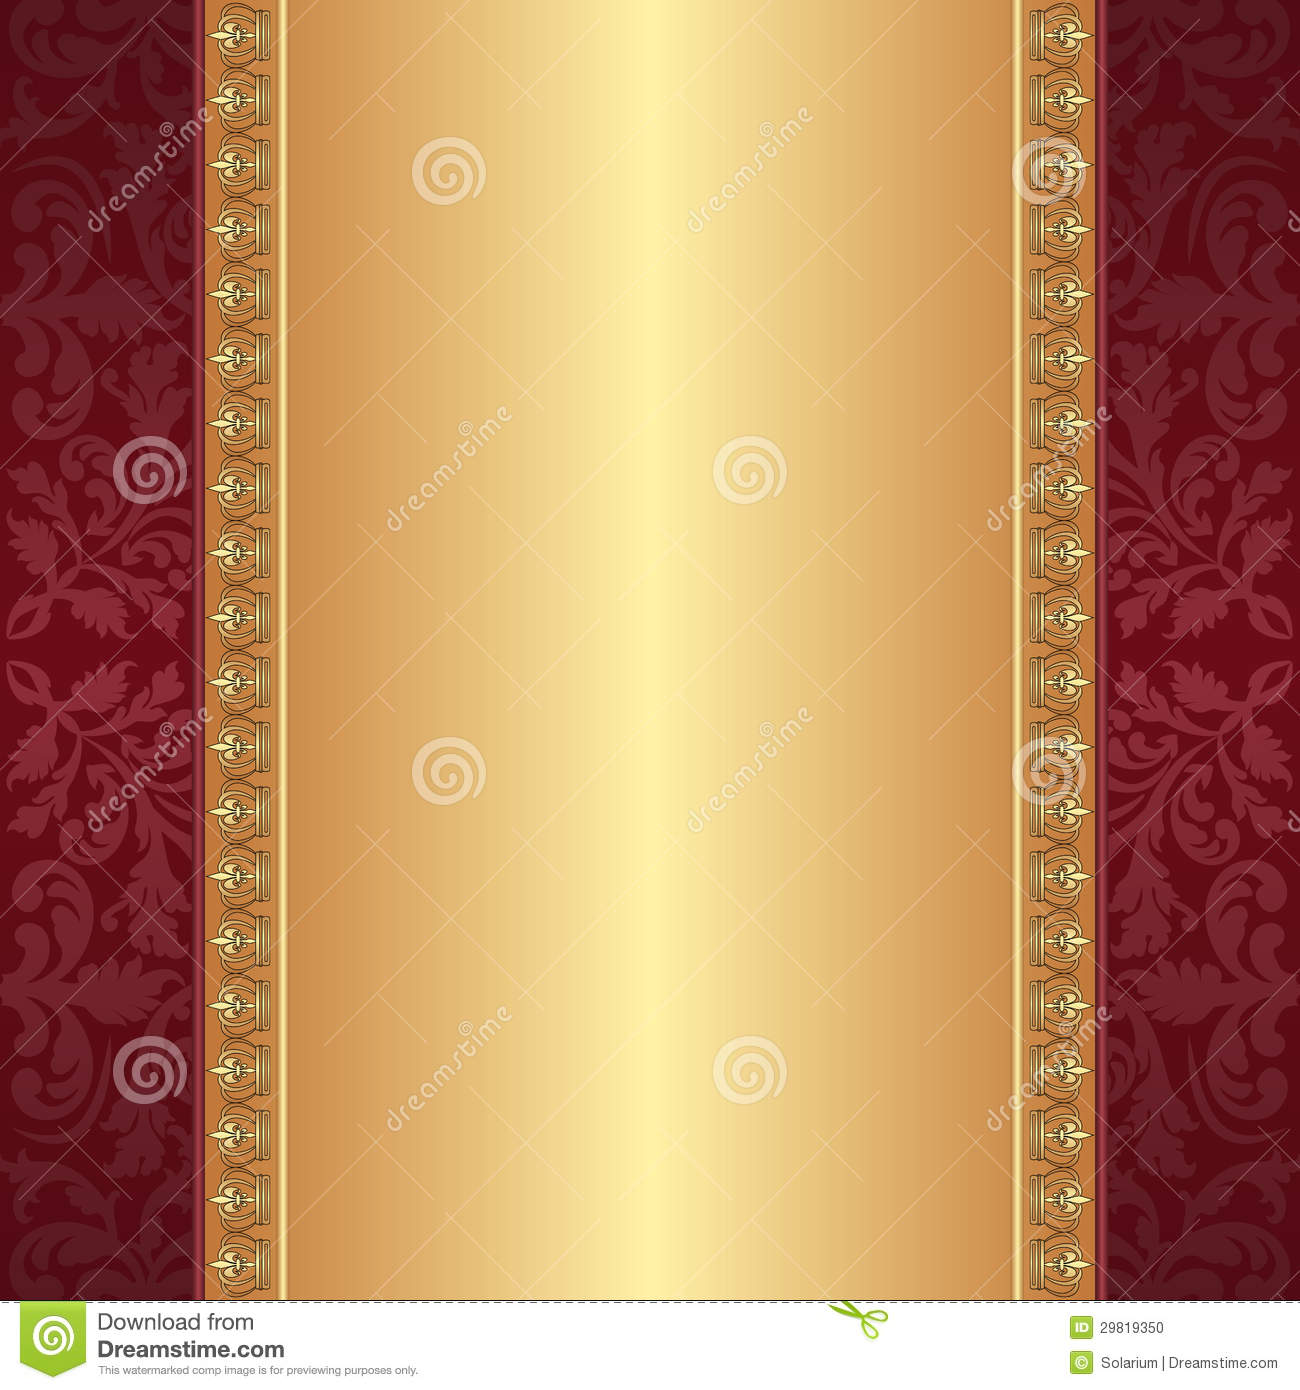 Maroon And Gold Background Stock Photo Image 29819350